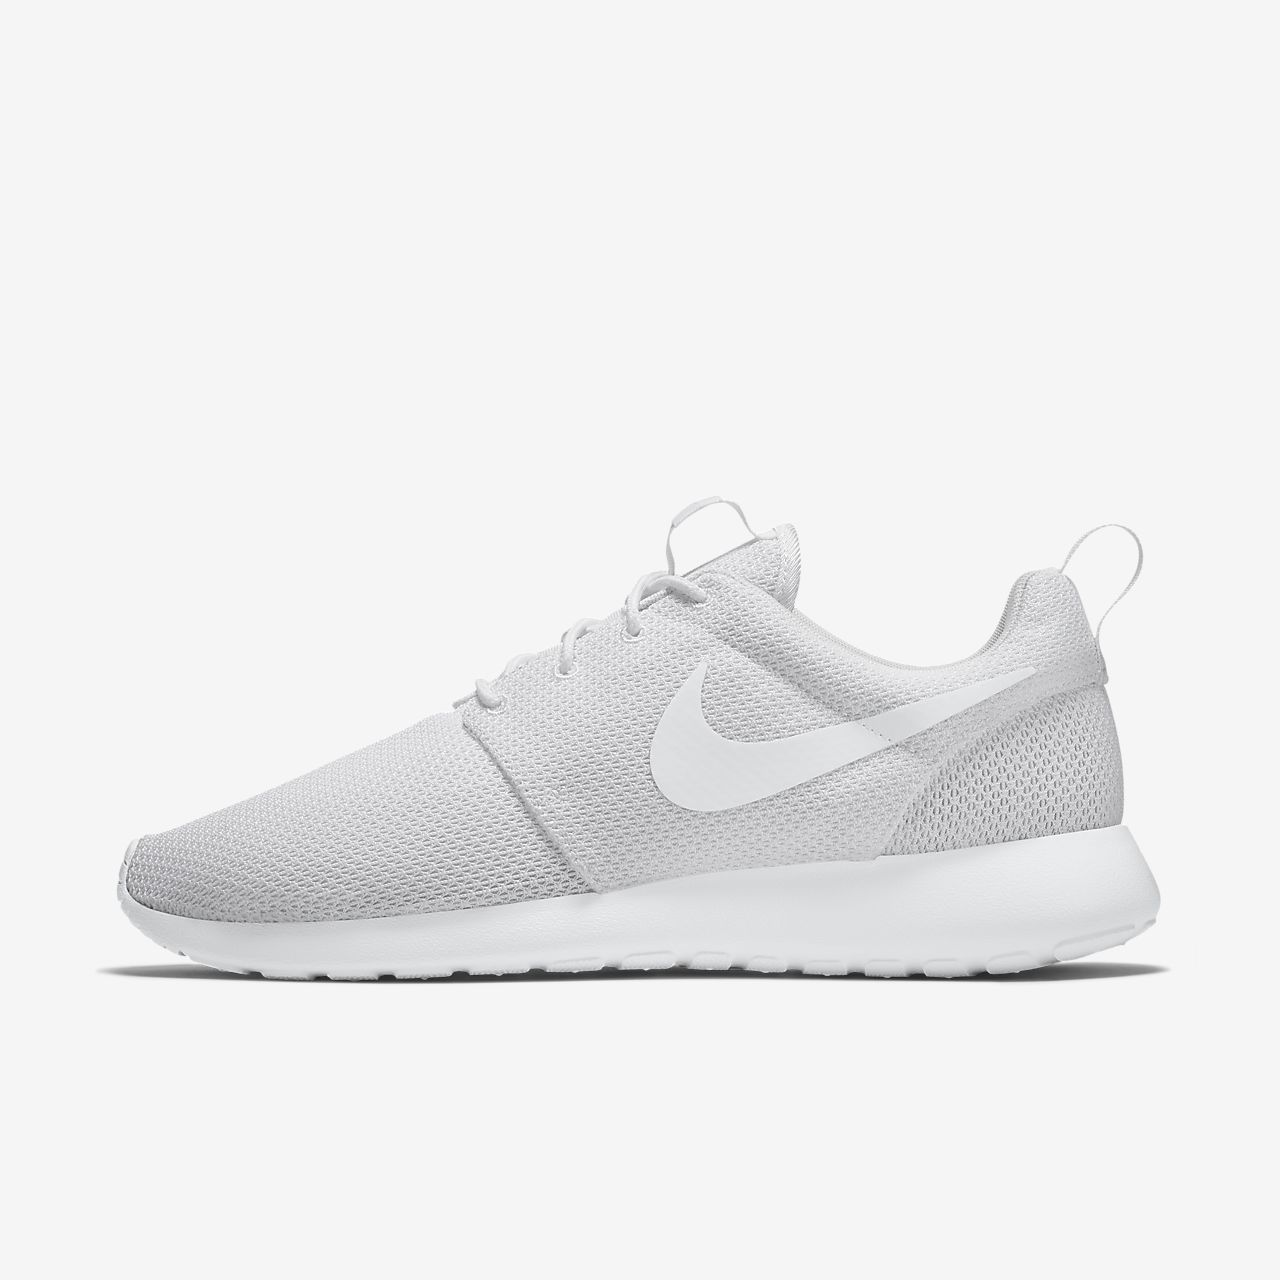 separation shoes eff08 ab958 ... Nike Roshe One Men s Shoe